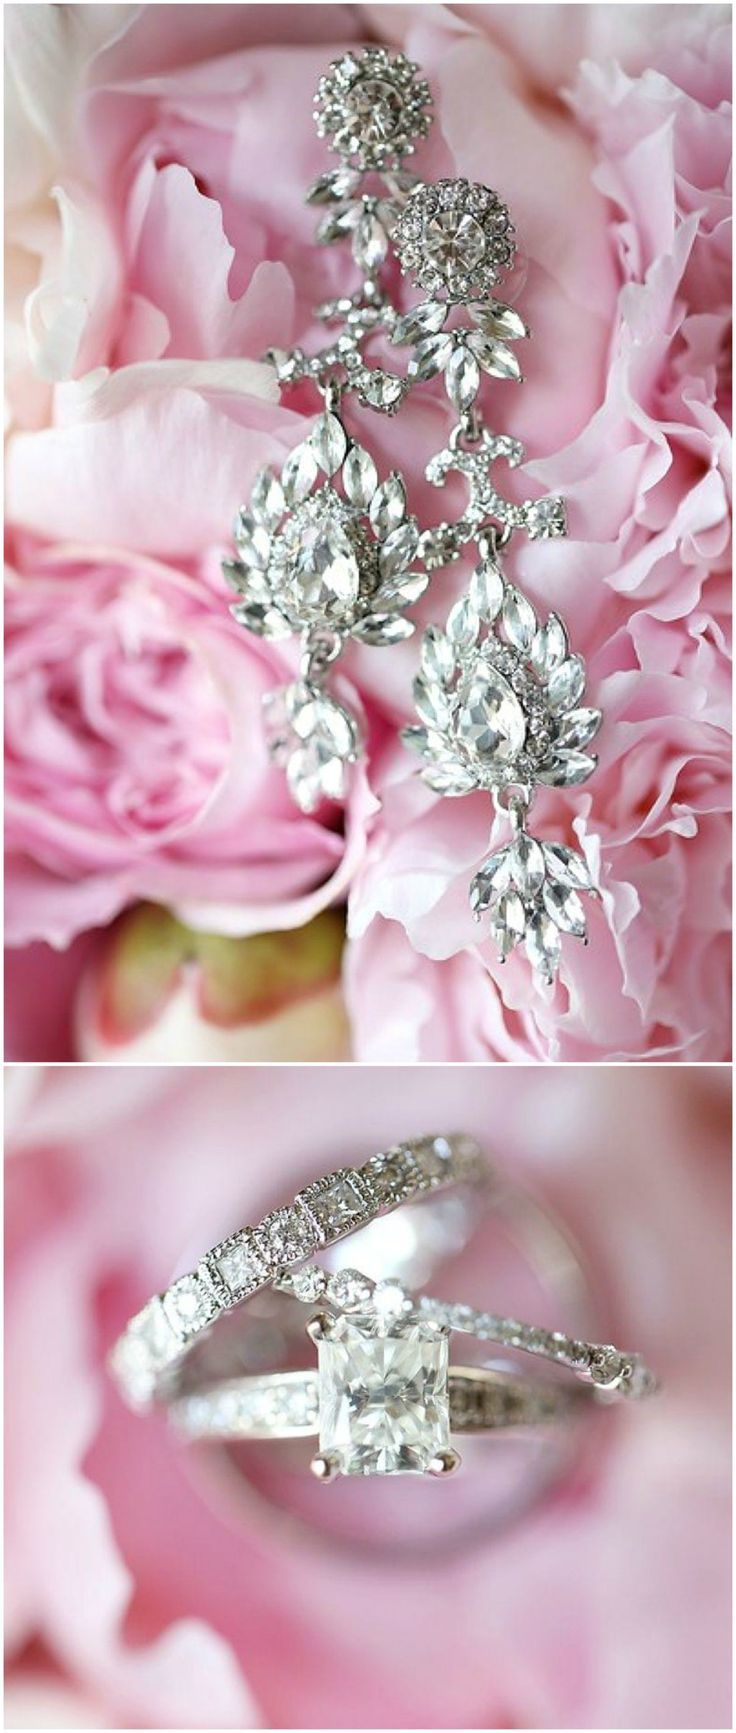 235 best Wedding Jewelry images on Pinterest | Bridal photography ...